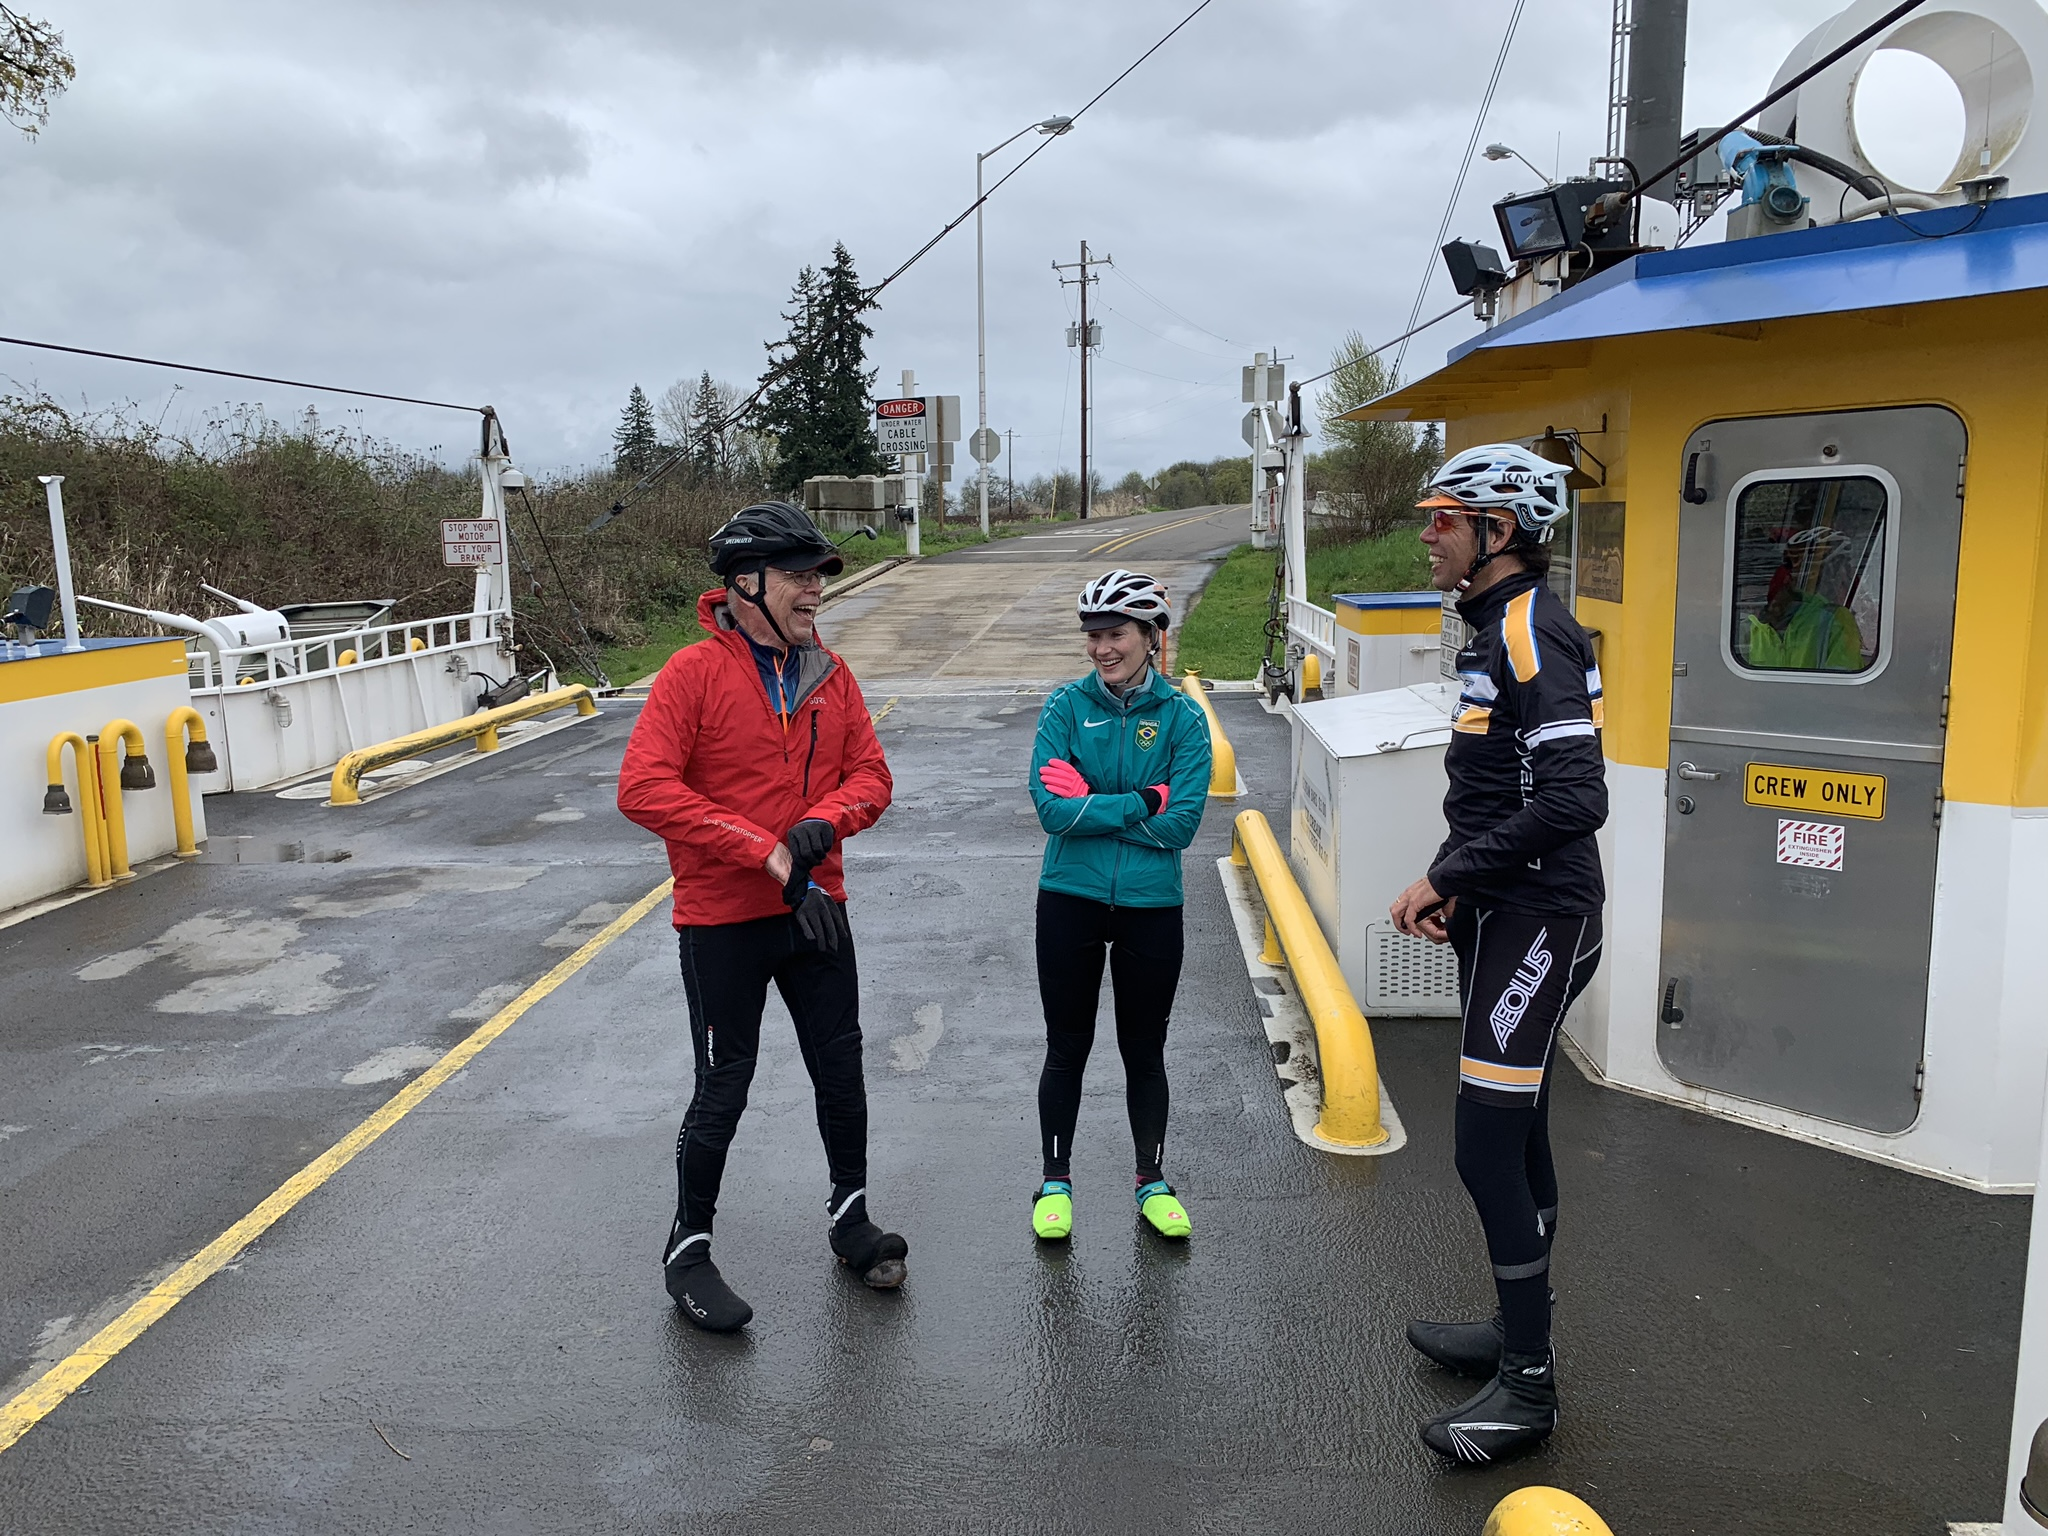 Peter Wendel at an MFC team ride with Gina Ambrose and Coach Kadir